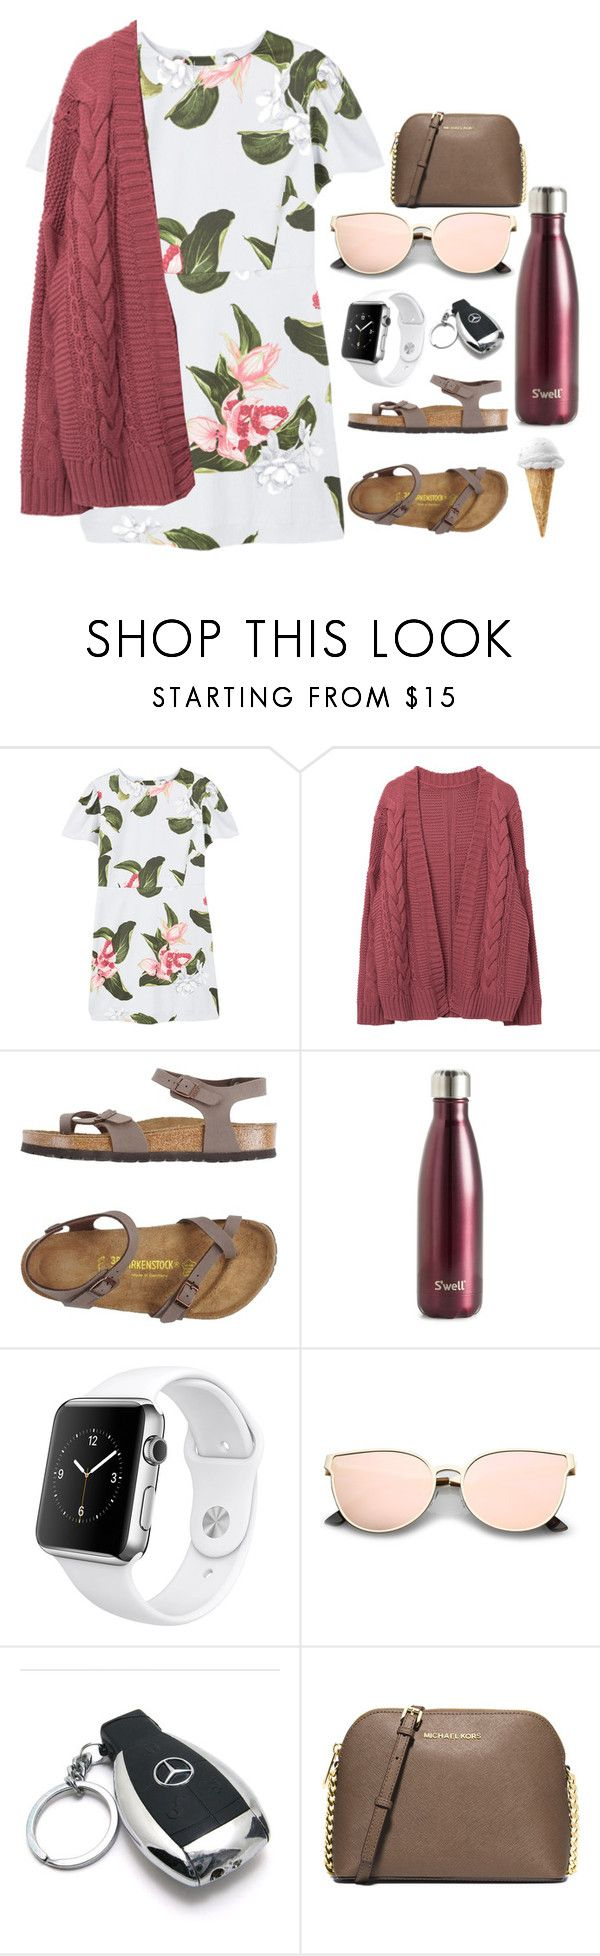 """"" by kyleemorrison ❤ liked on Polyvore featuring MANGO, Birkenstock, S'well, Apple, Mercedes-Benz and MICHAEL Michael Kors"